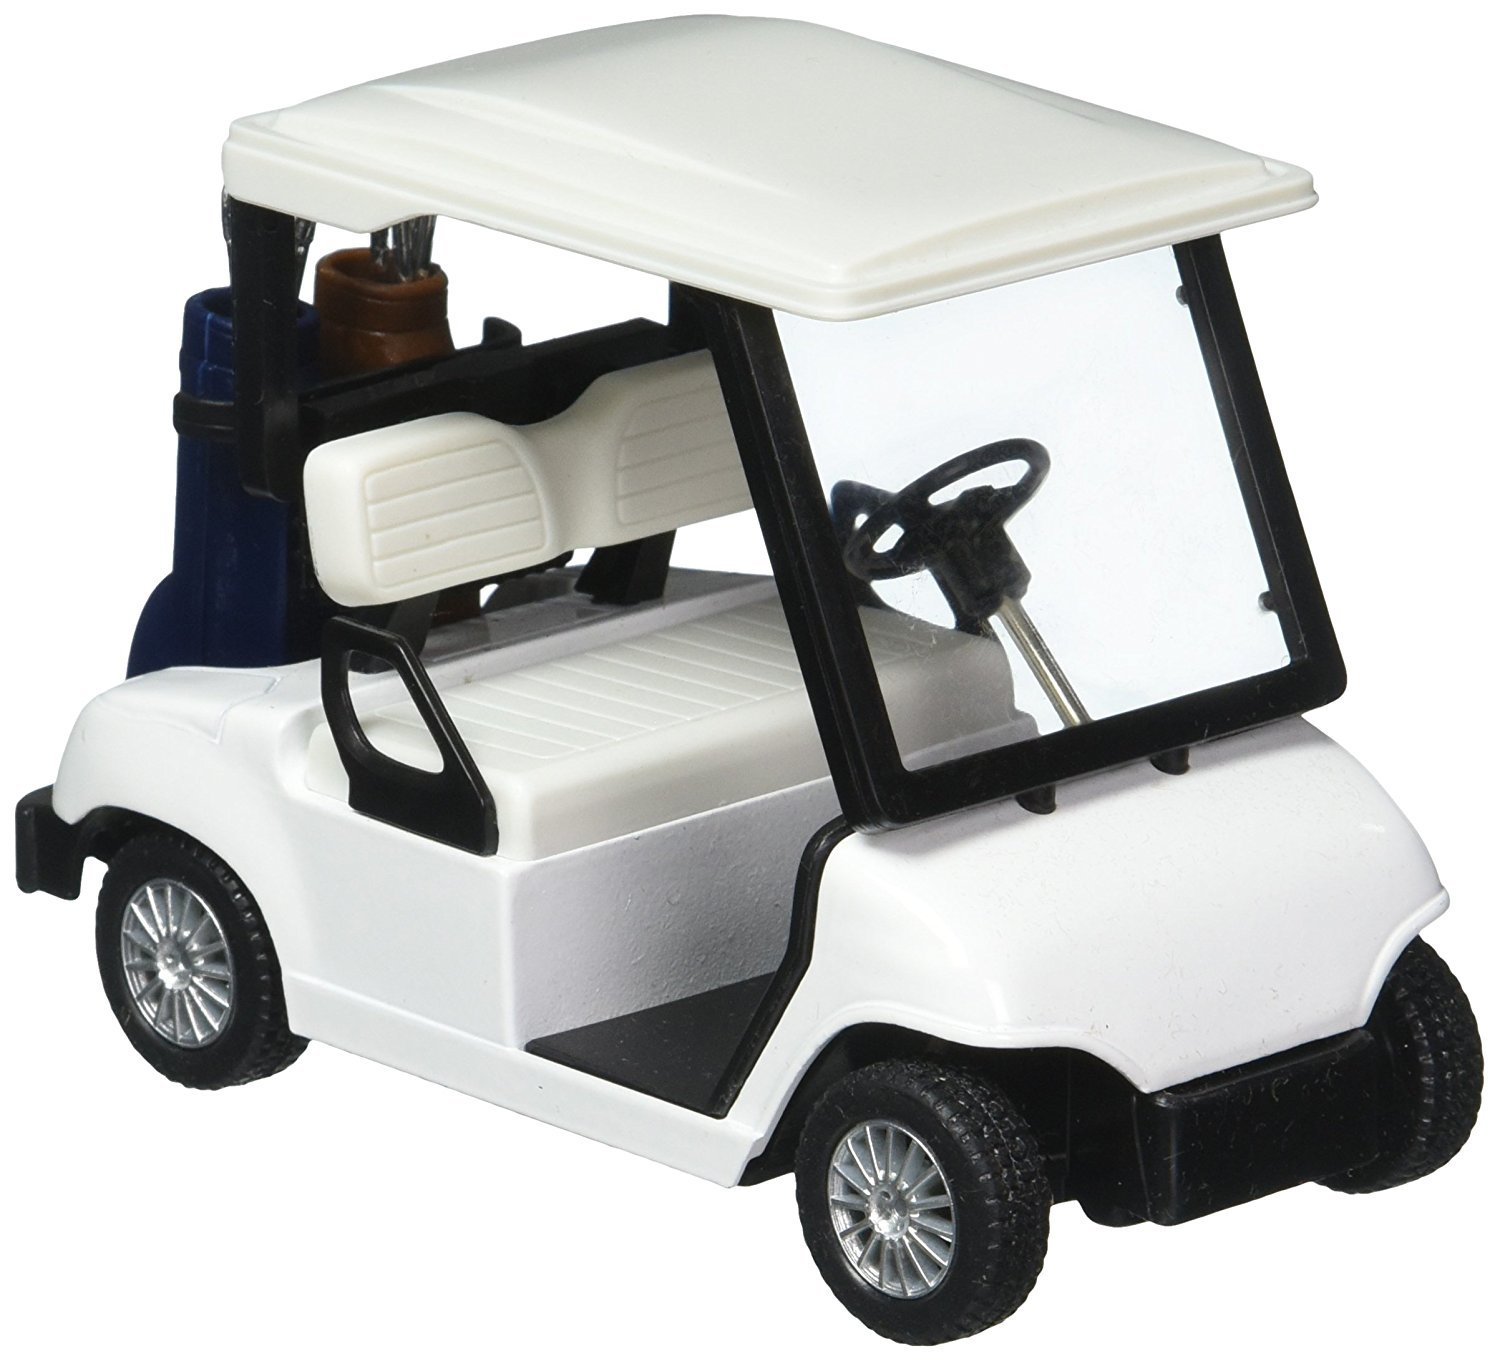 ⛳ Kinsfun Diecast Golf Cart No Decals